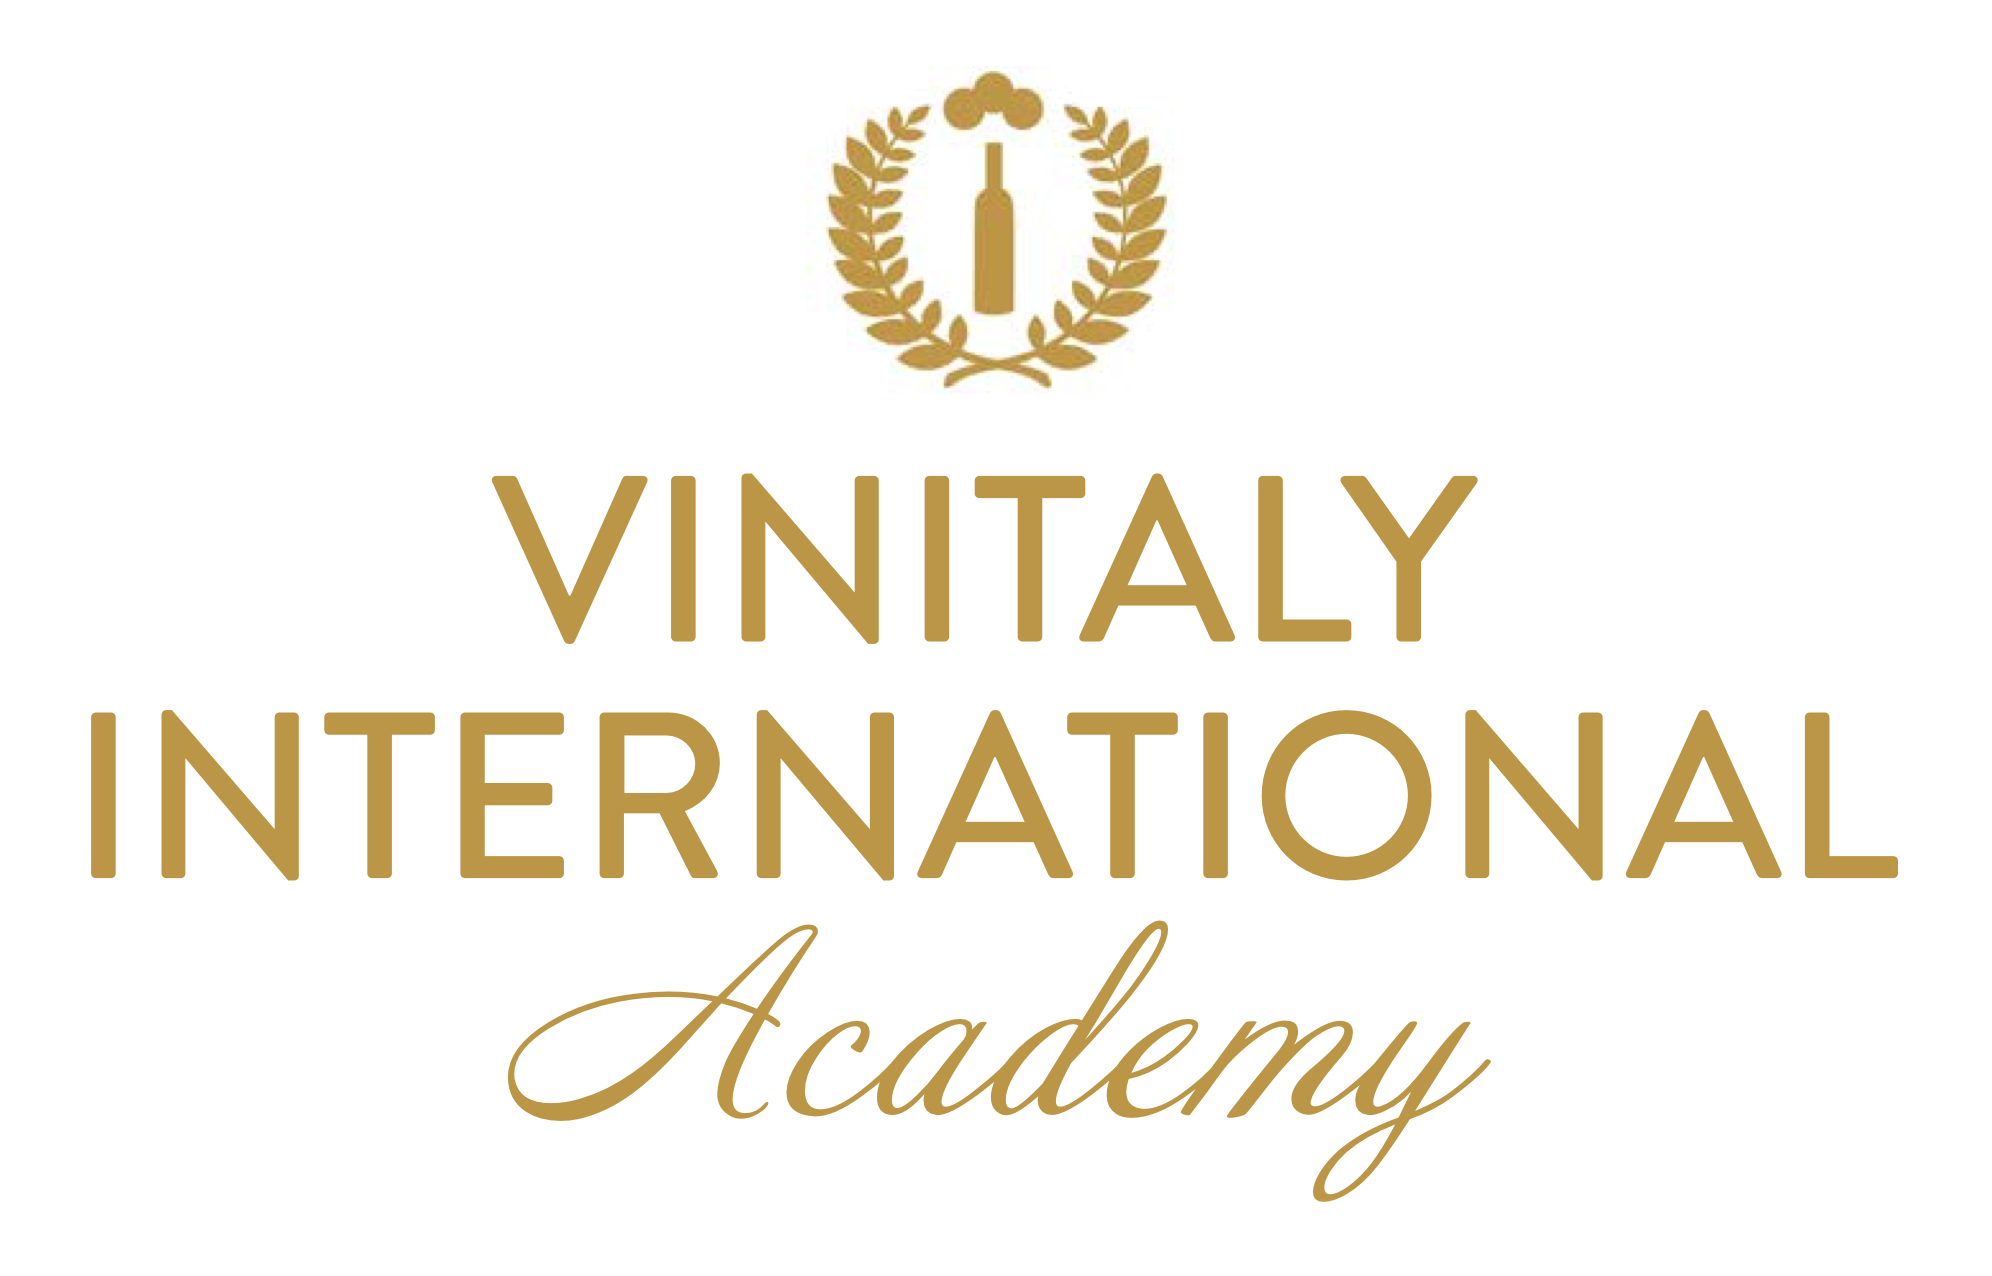 """Vinitaly International Academy sets out to shine a light on the """"good, the bad and the ugly"""" of artisanal wine"""